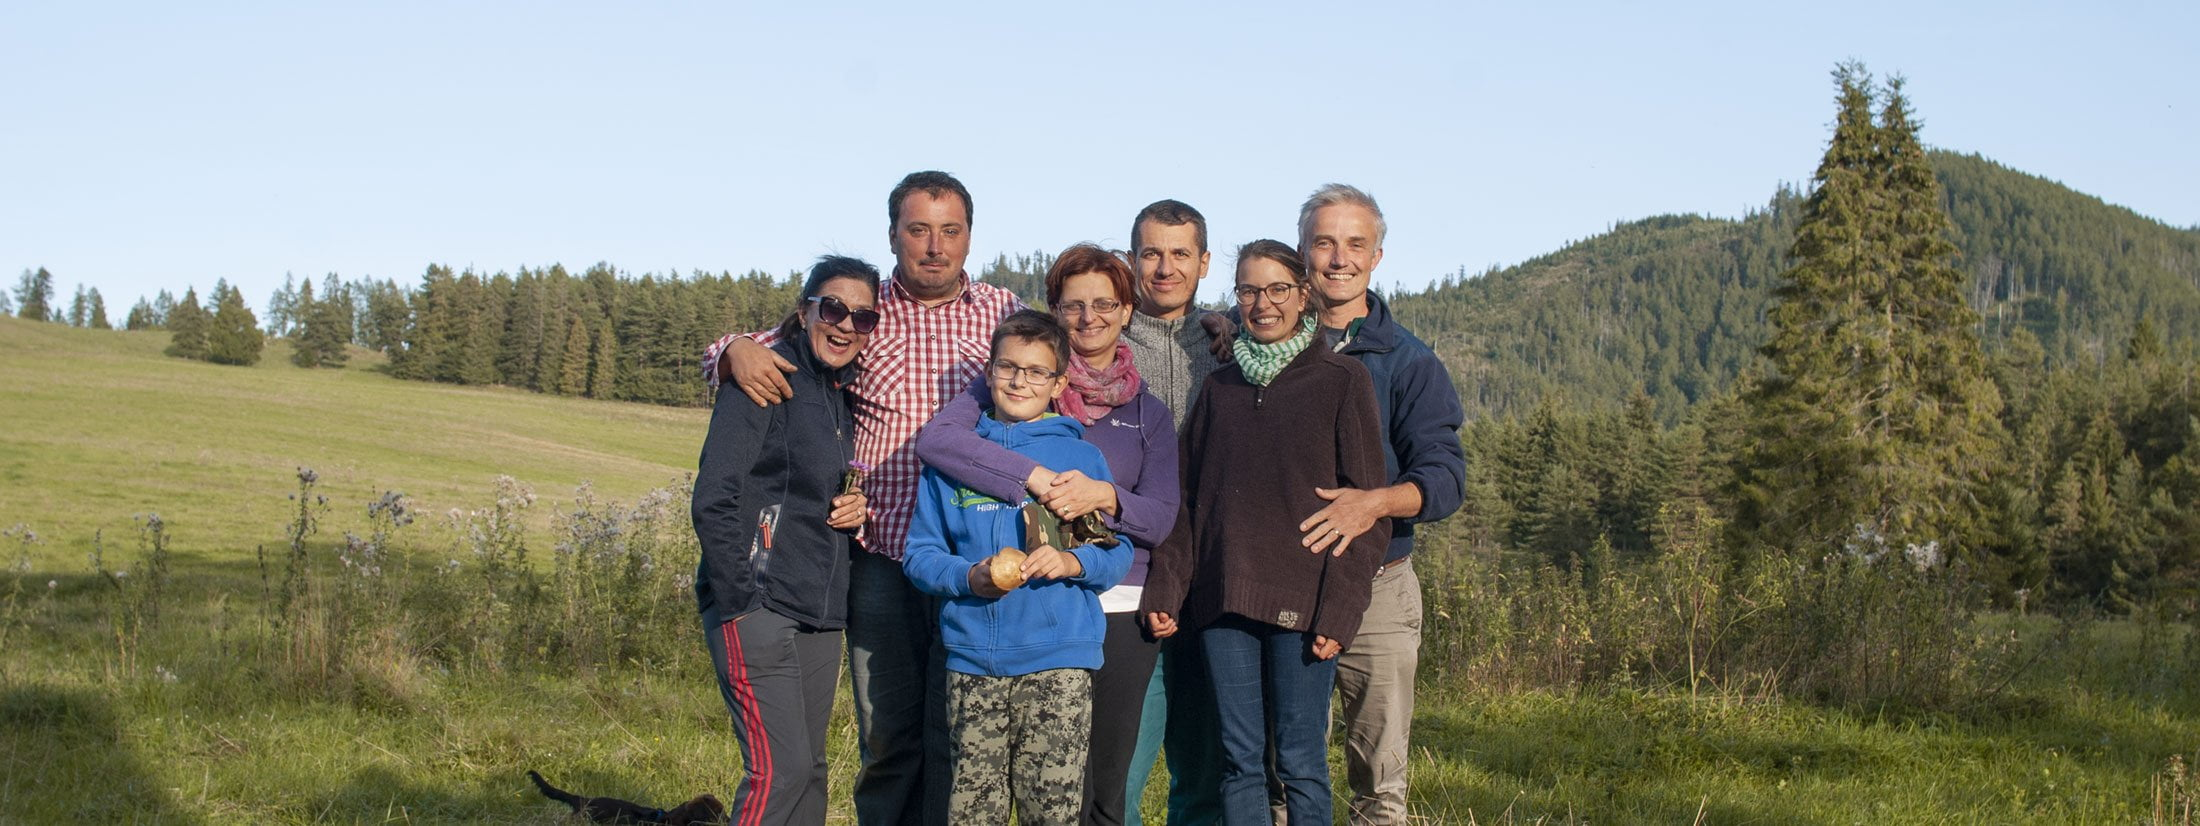 group of seven adult friends including a boy photographed on a meadow in pine woods